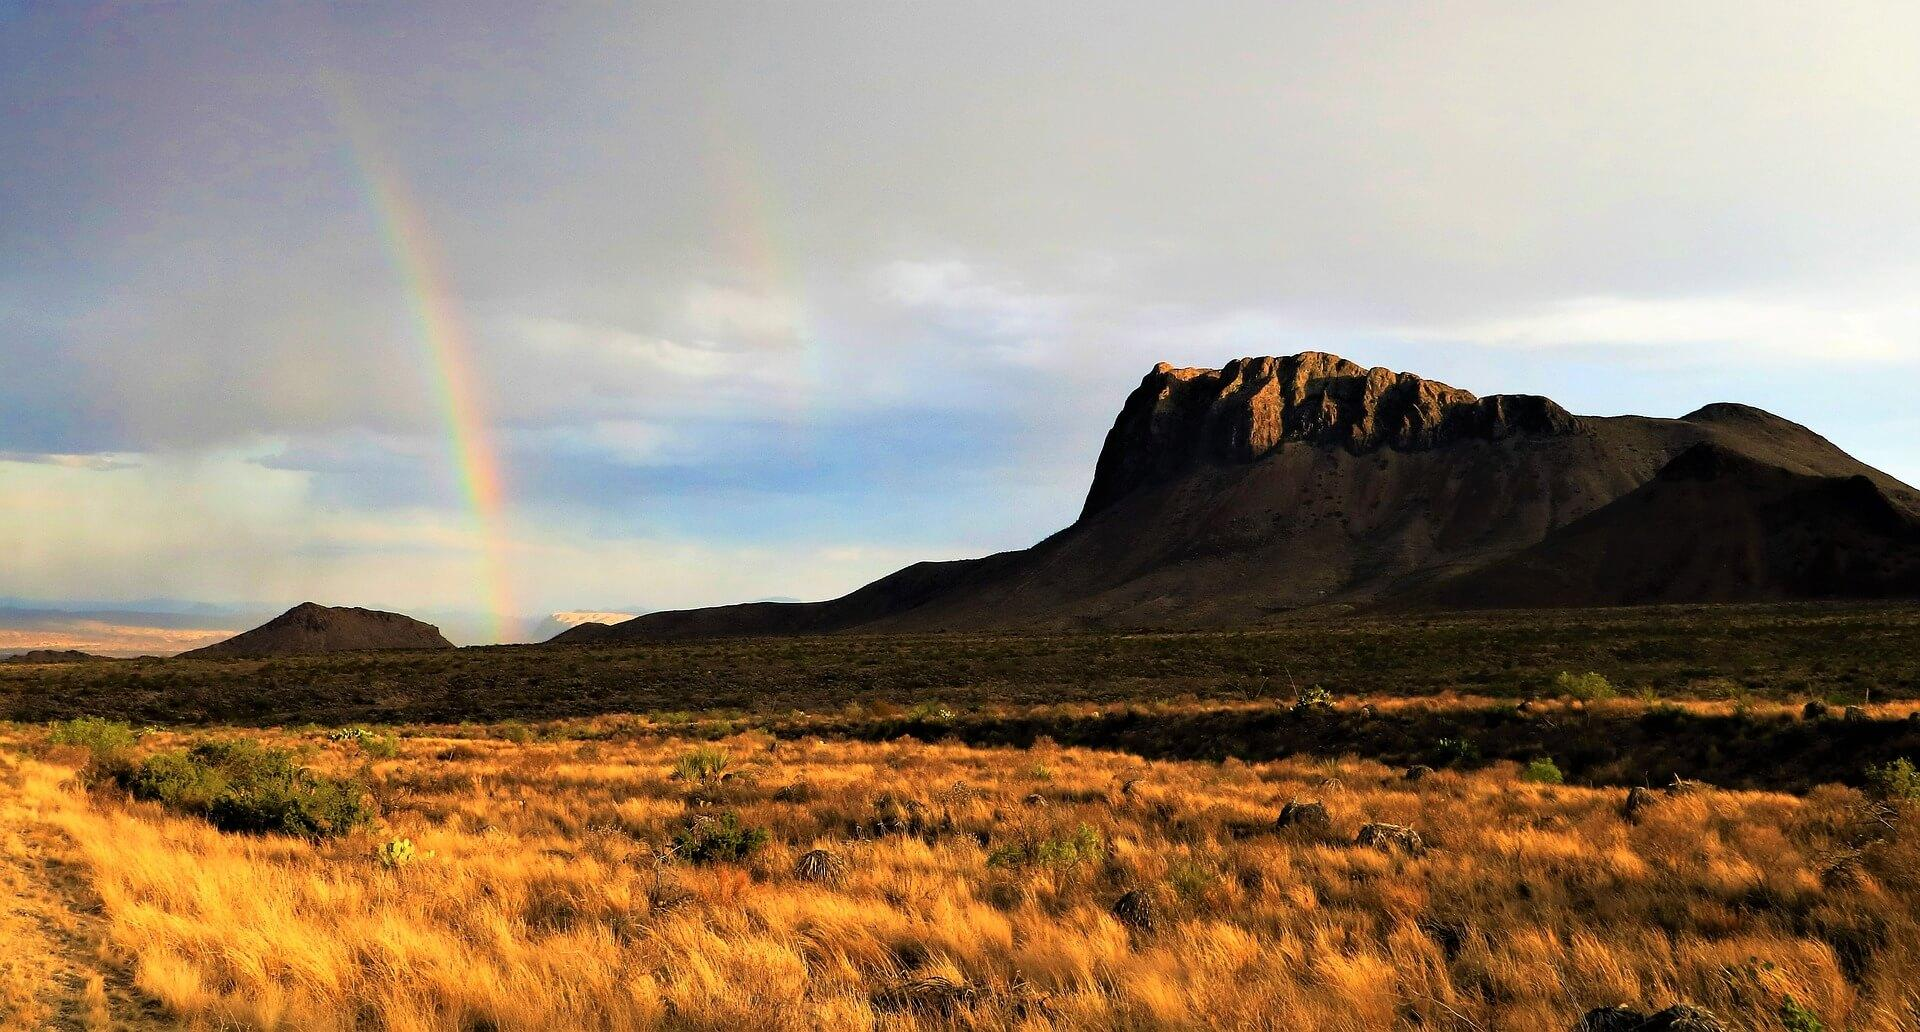 A rainbow falling over the Big Bend National Park